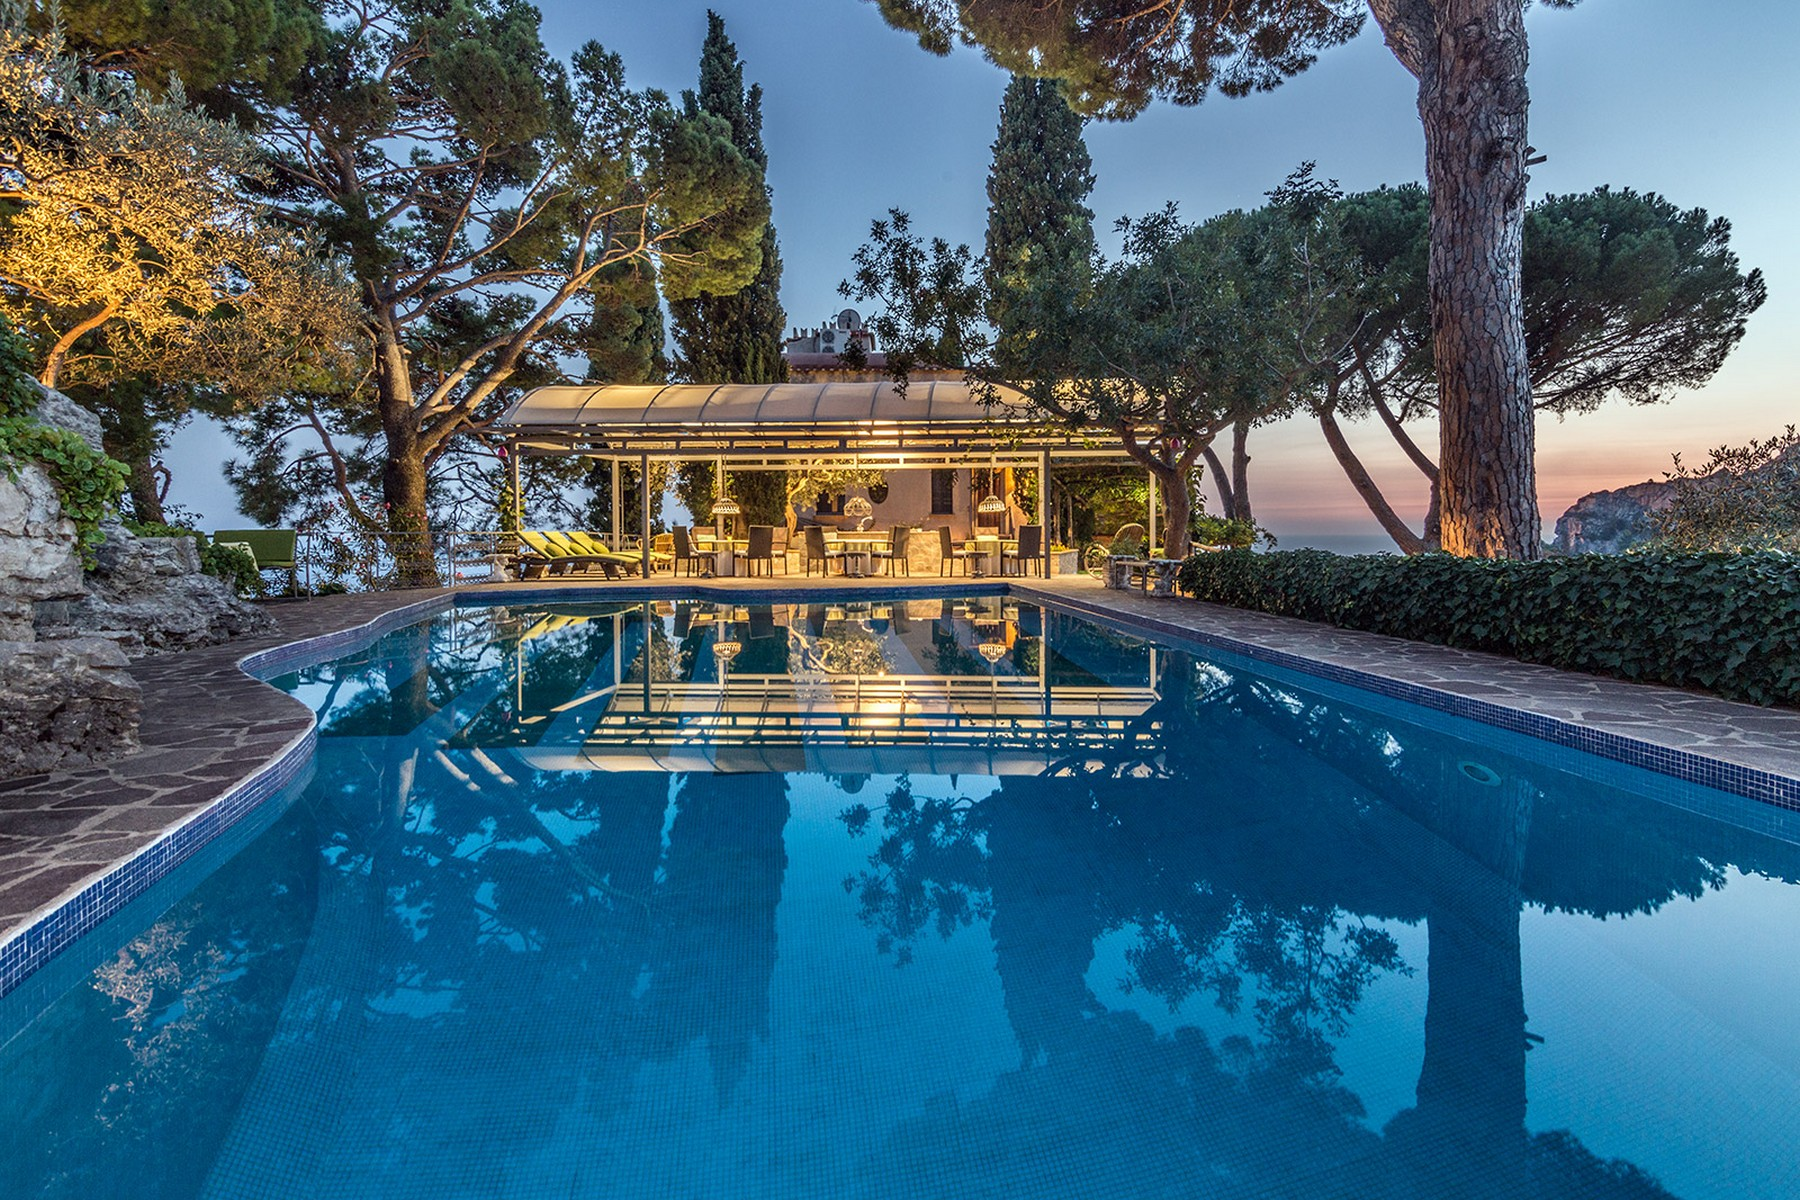 Single Family Home for Sale at Torre di Civita, stunning property by the Amalfi Coast Ravello, Salerno, Italy